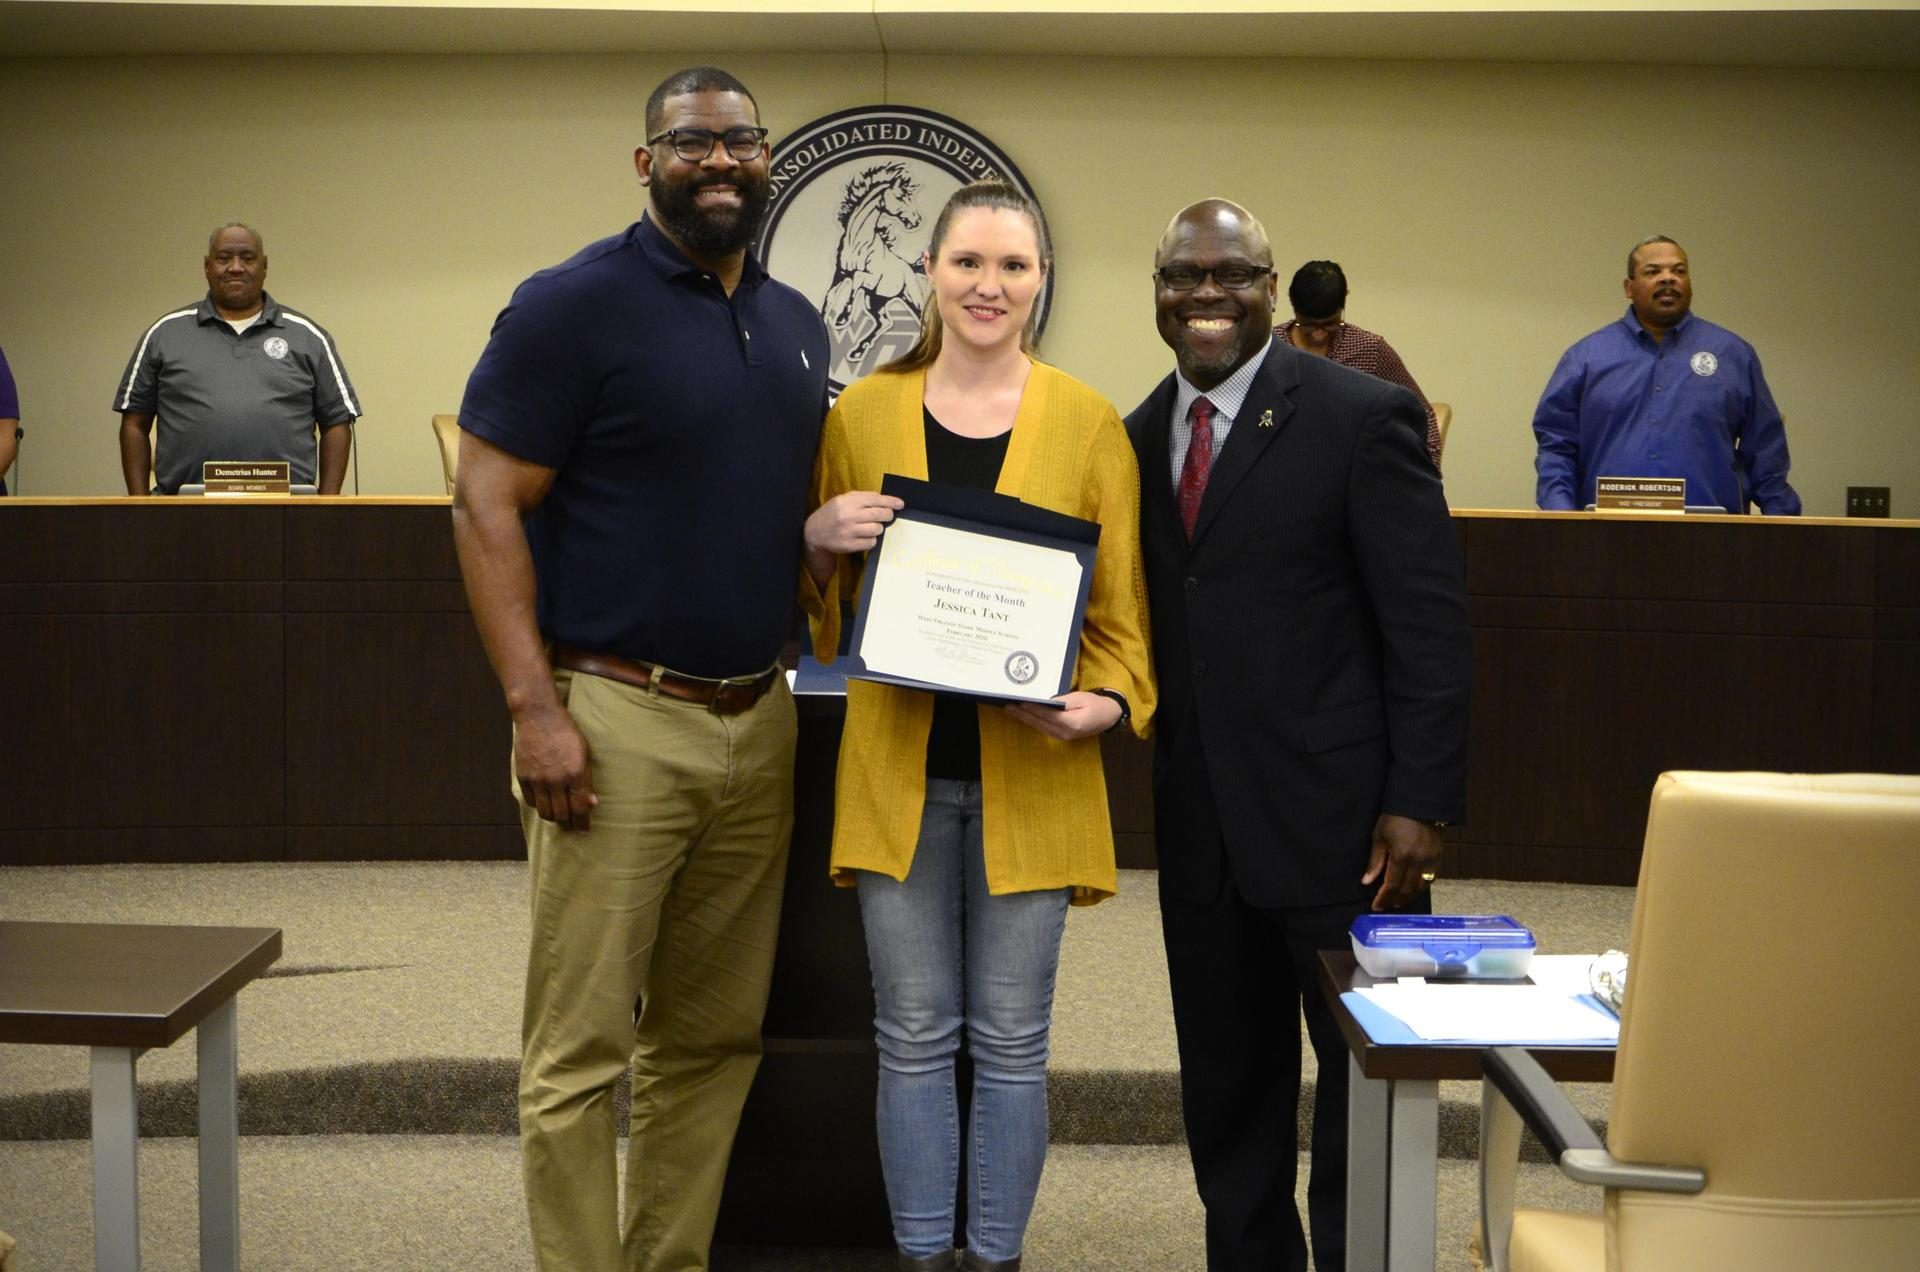 Teacher of month, Jessica Tant, pictured with Superintendent Dr. Harris and Principal Mr. McGrew